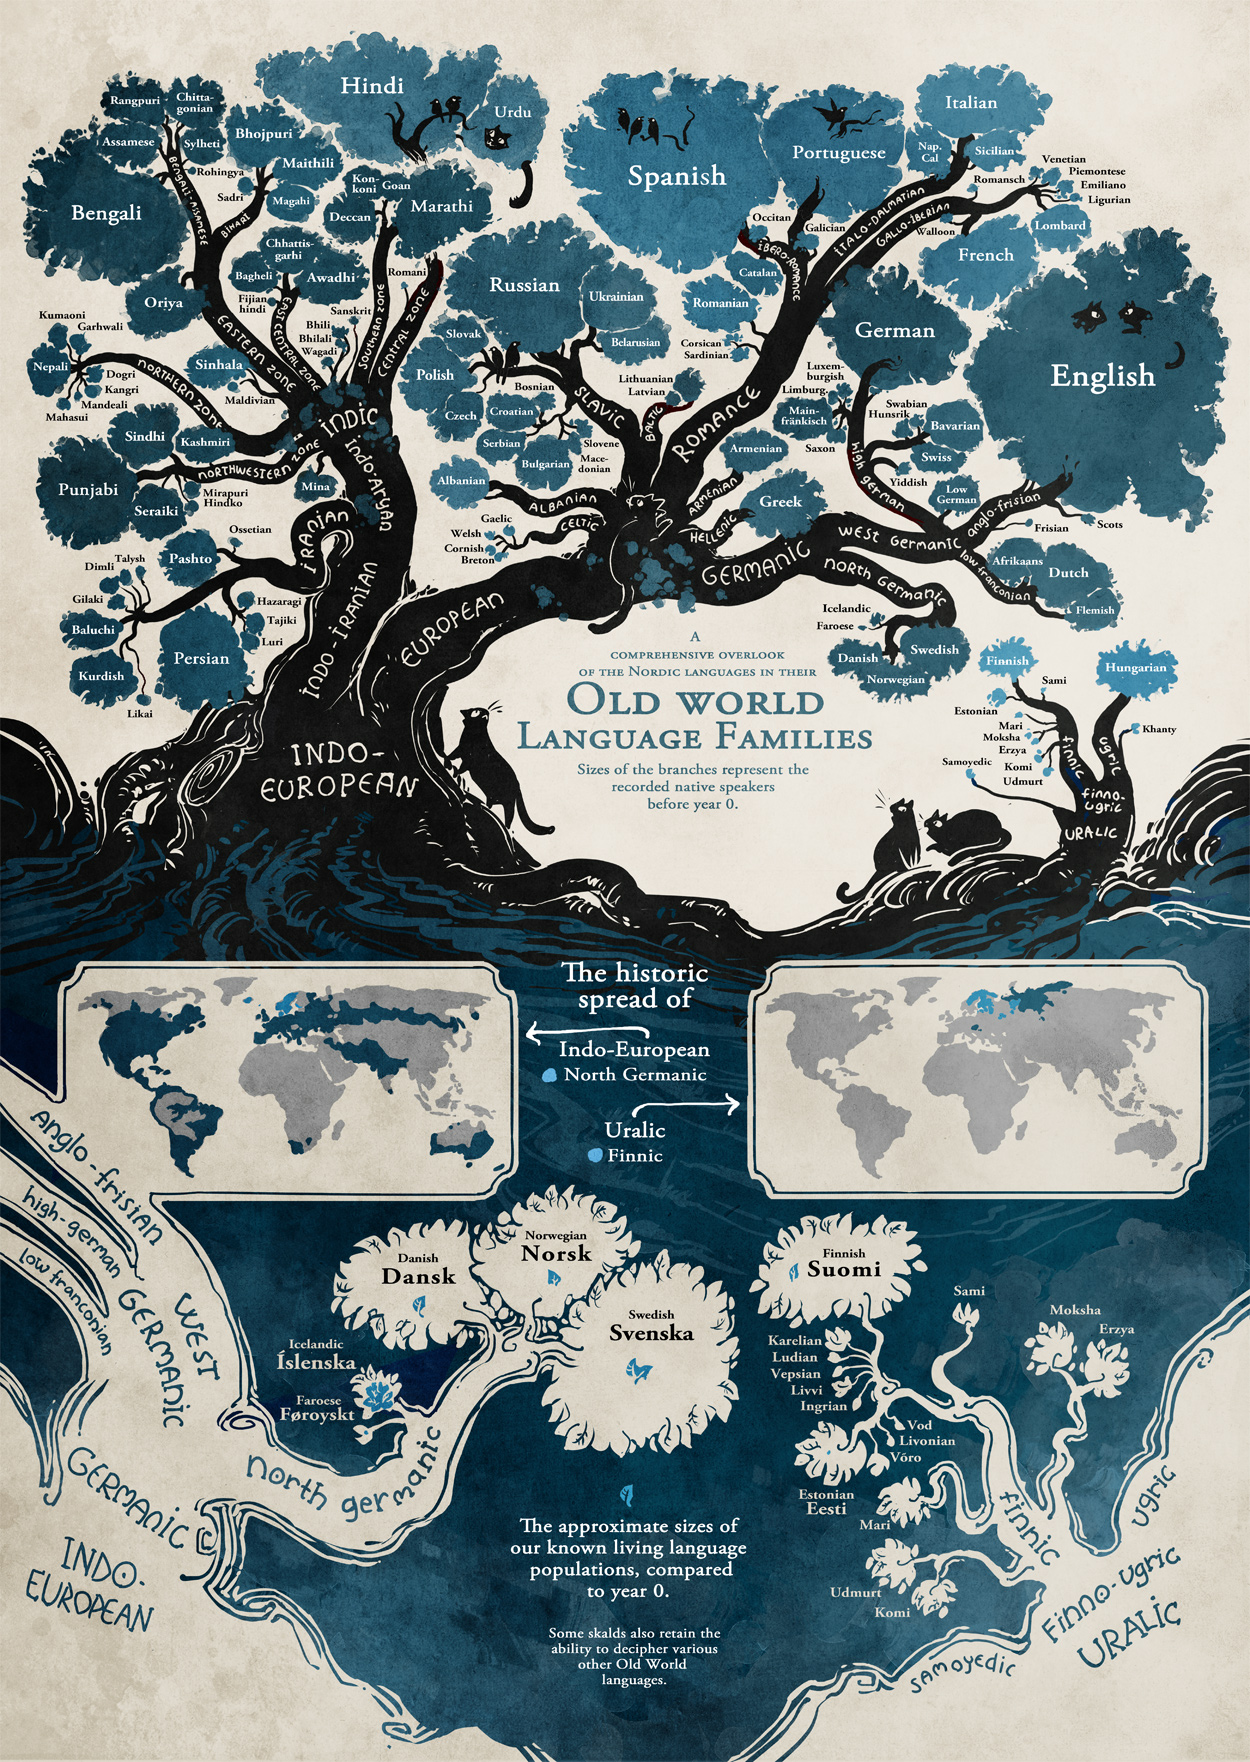 tree-of-languages-branches-indo-european_1